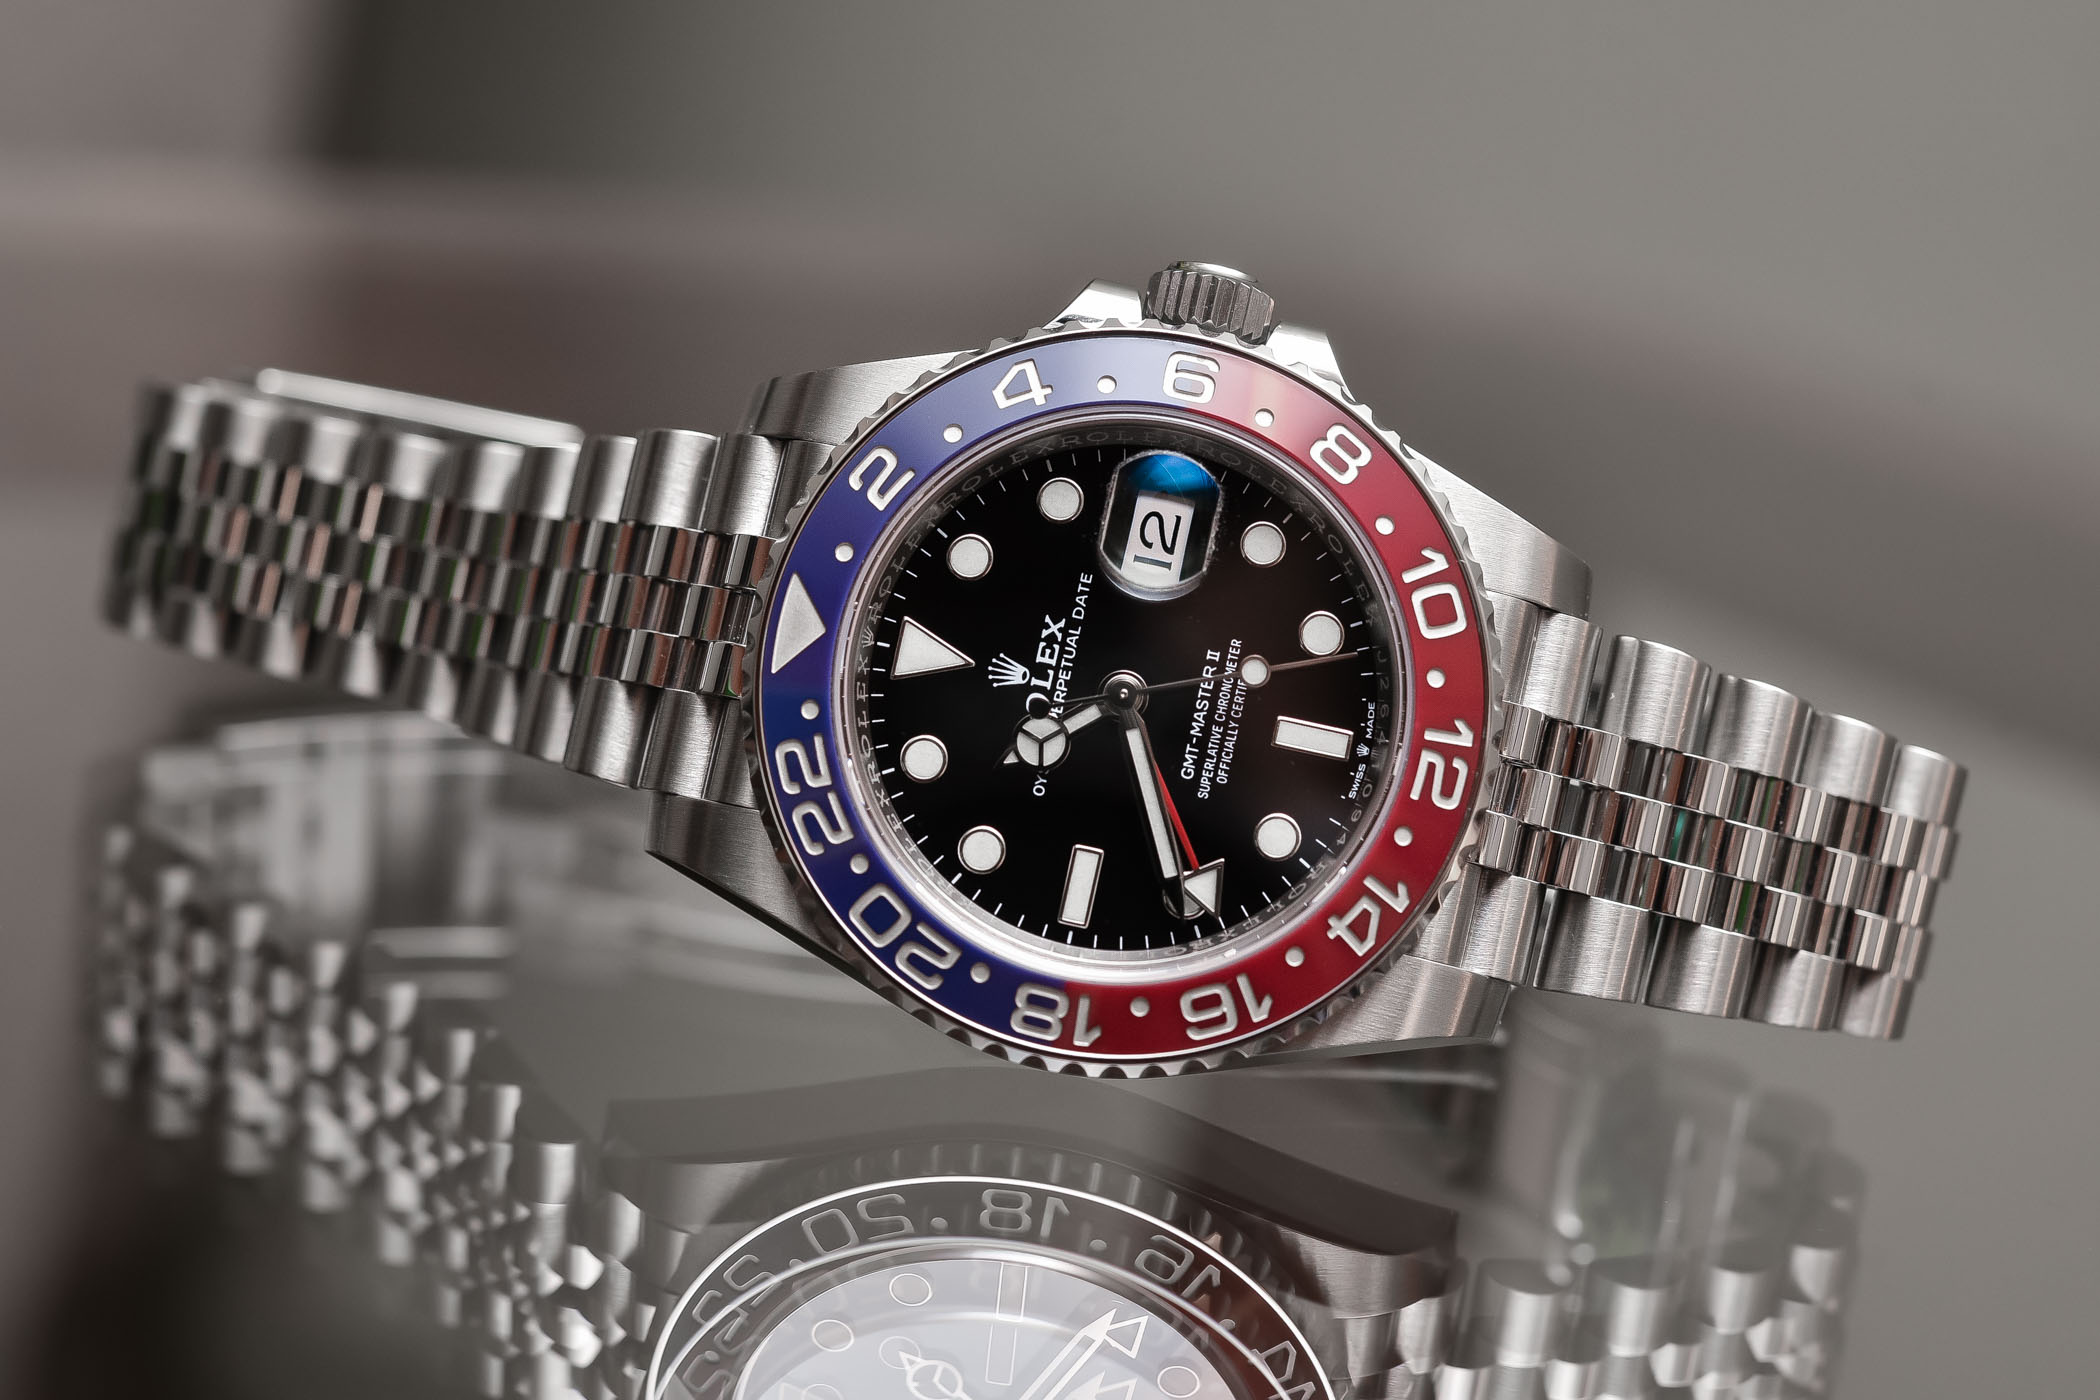 Rolex-GMT-Master-II-Pepsi-126710-BLRO-Steel-Jubilee-Calibre-3285-Baselworld-2018-Review-8.jpg